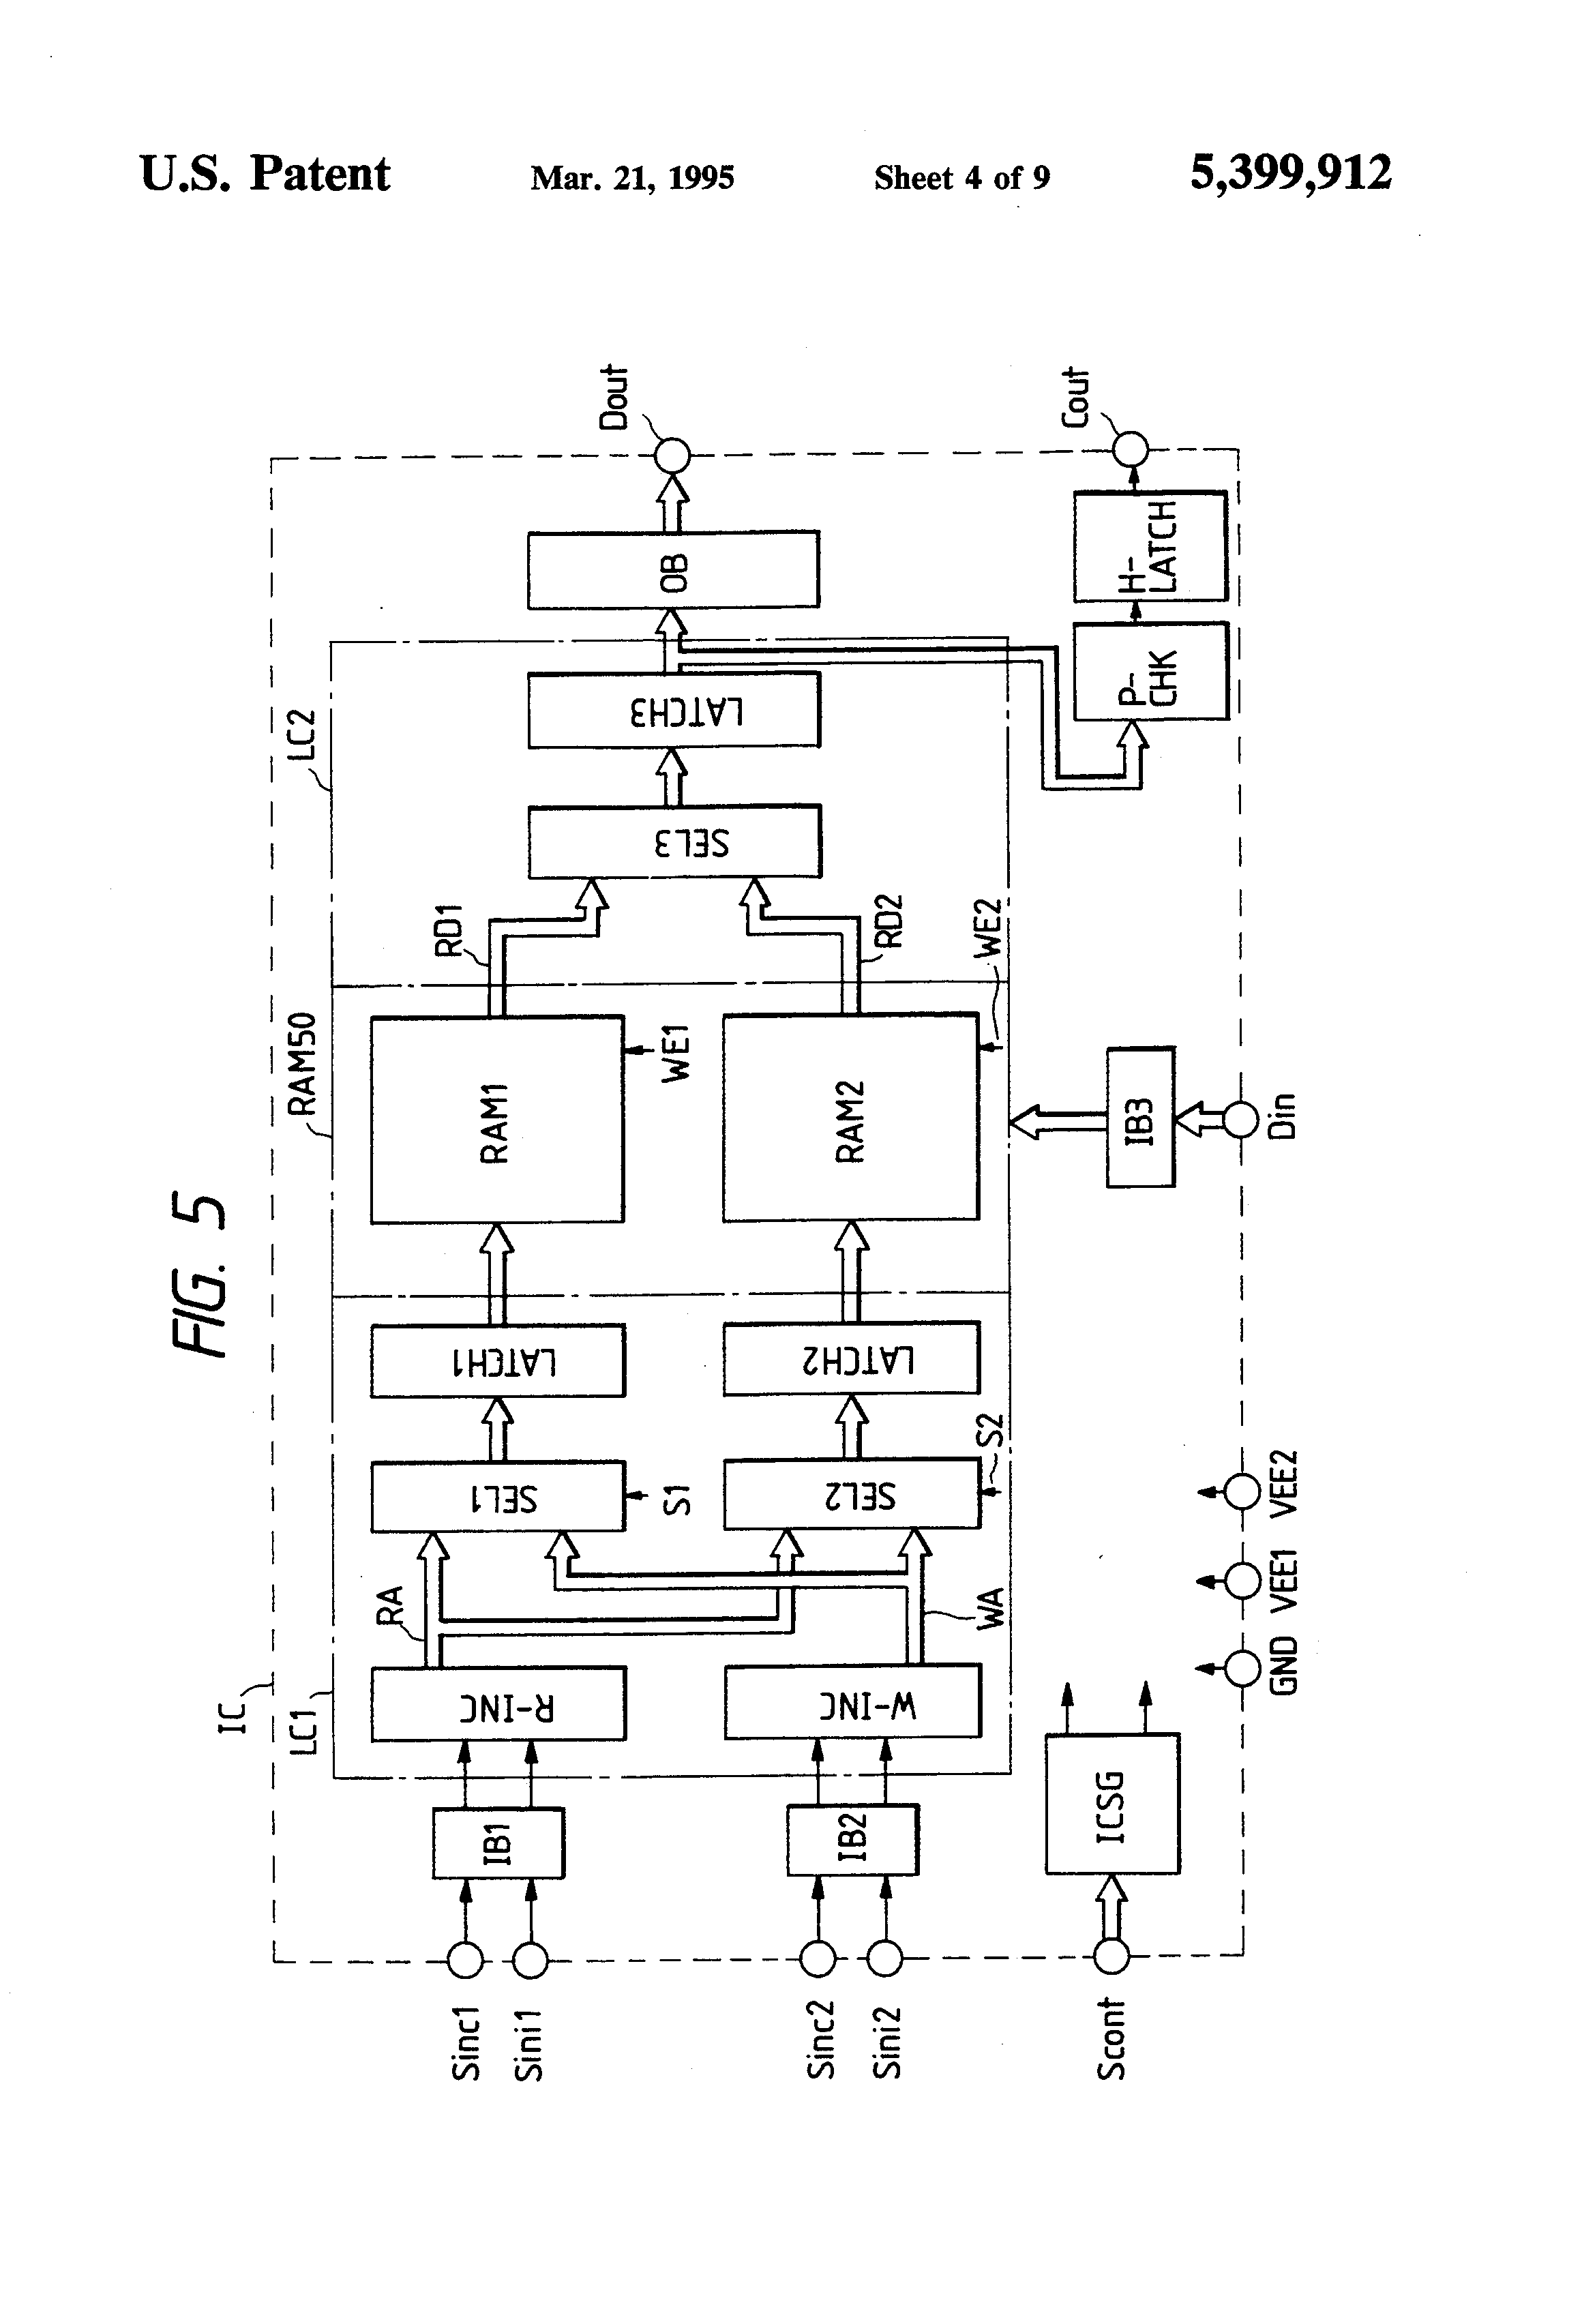 Latching Circuit Diagram Patente Us5399912 Hold Type Latch With Increased Margin In Patent Drawing